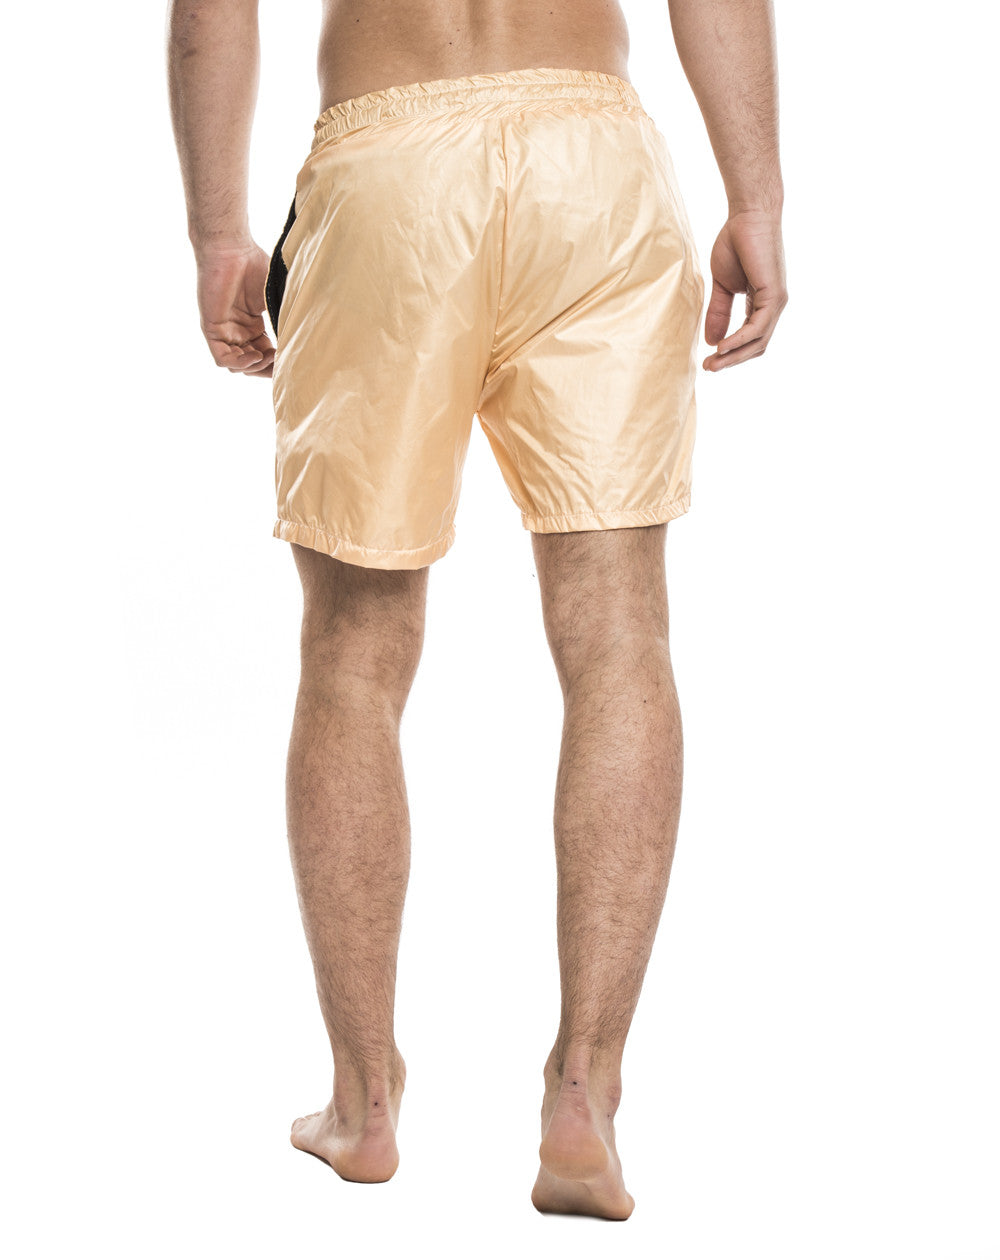 MEN'S CLOTHING | BOTTOMS | SWIMWEAR | GOLD SWIM PANTS | SWIM SHORTS | TECHNICAL FABRIC | ELASTICATED DRAWSTRING WAISTBAND | MESH LINING | MID LENGTH | SIDE POCKETS | POLYESTER | #SUMMERVIBES | NOHOW